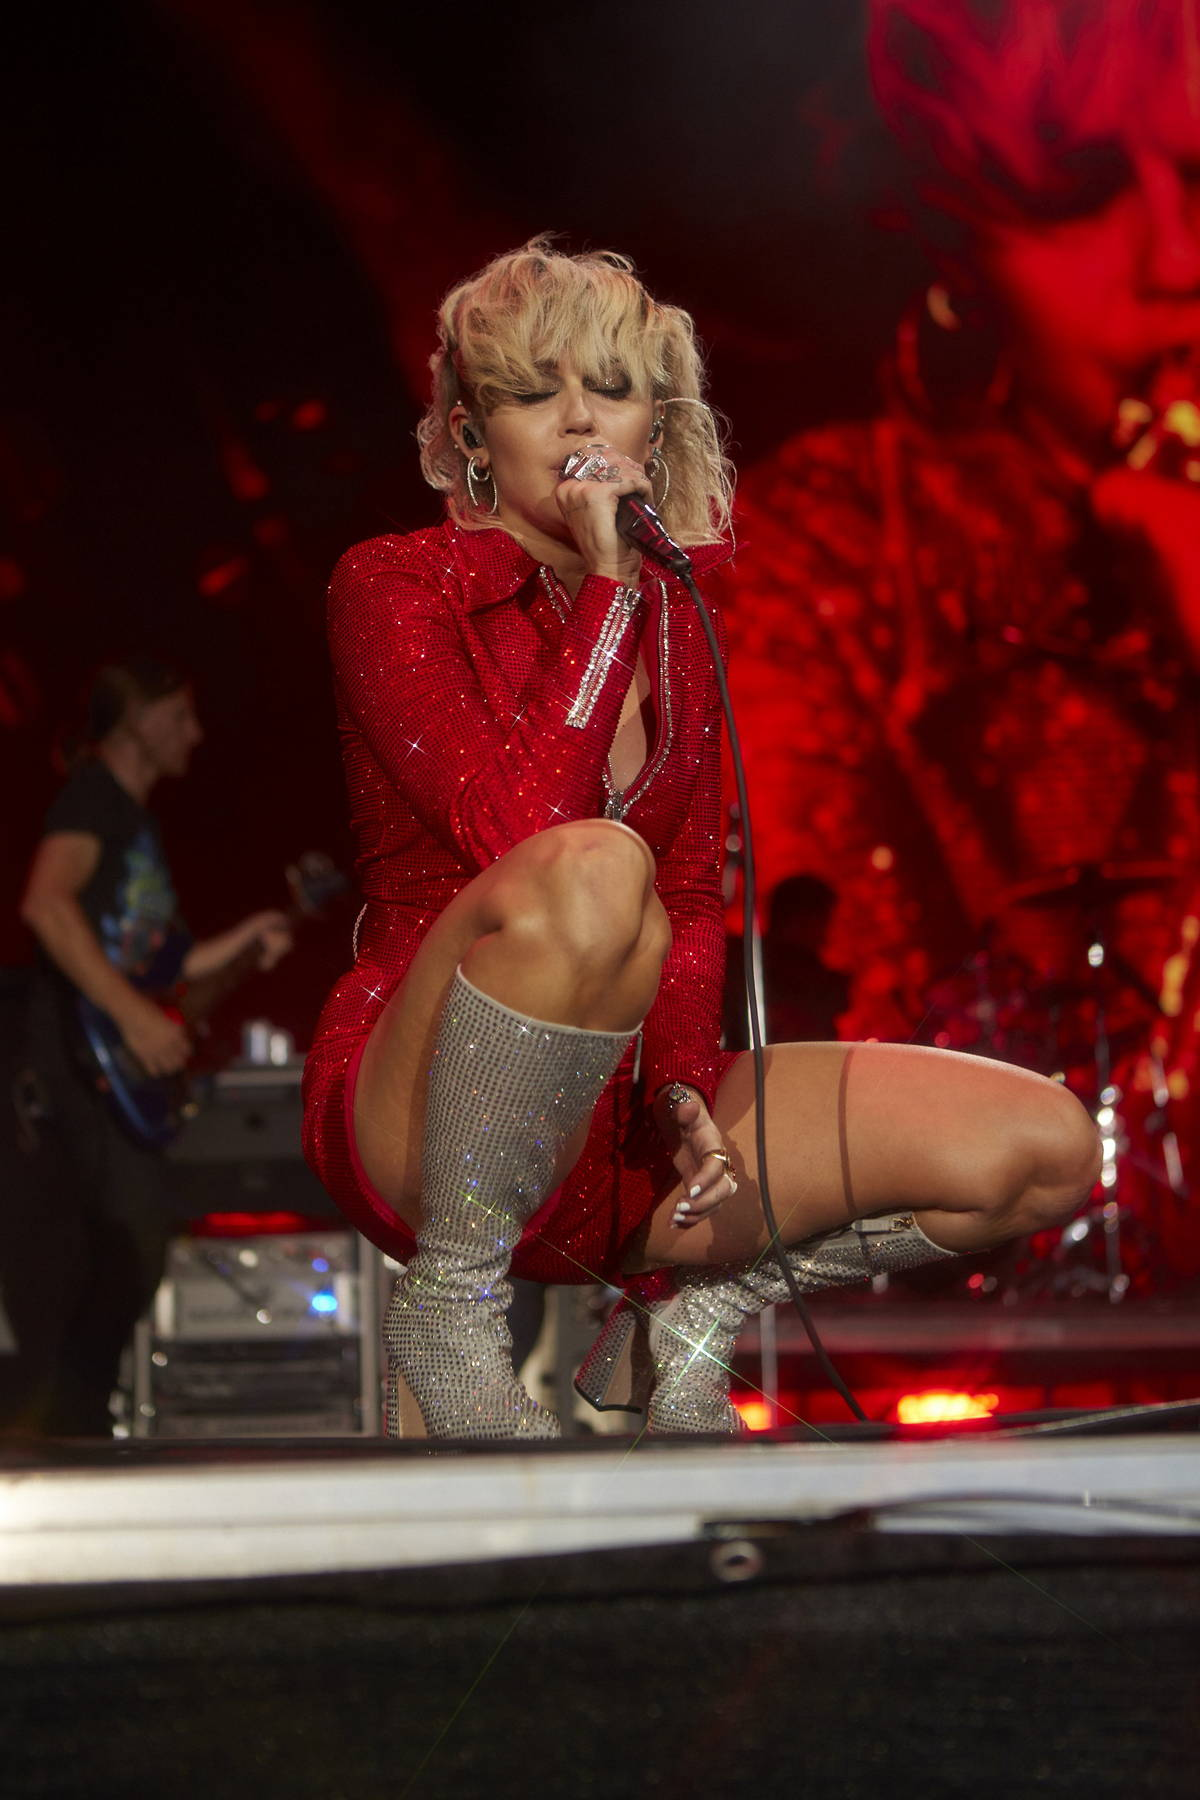 Miley Cyrus performs live on stage during Lollapalooza 2021, Day 1 Grant Park Chicago, Illinois